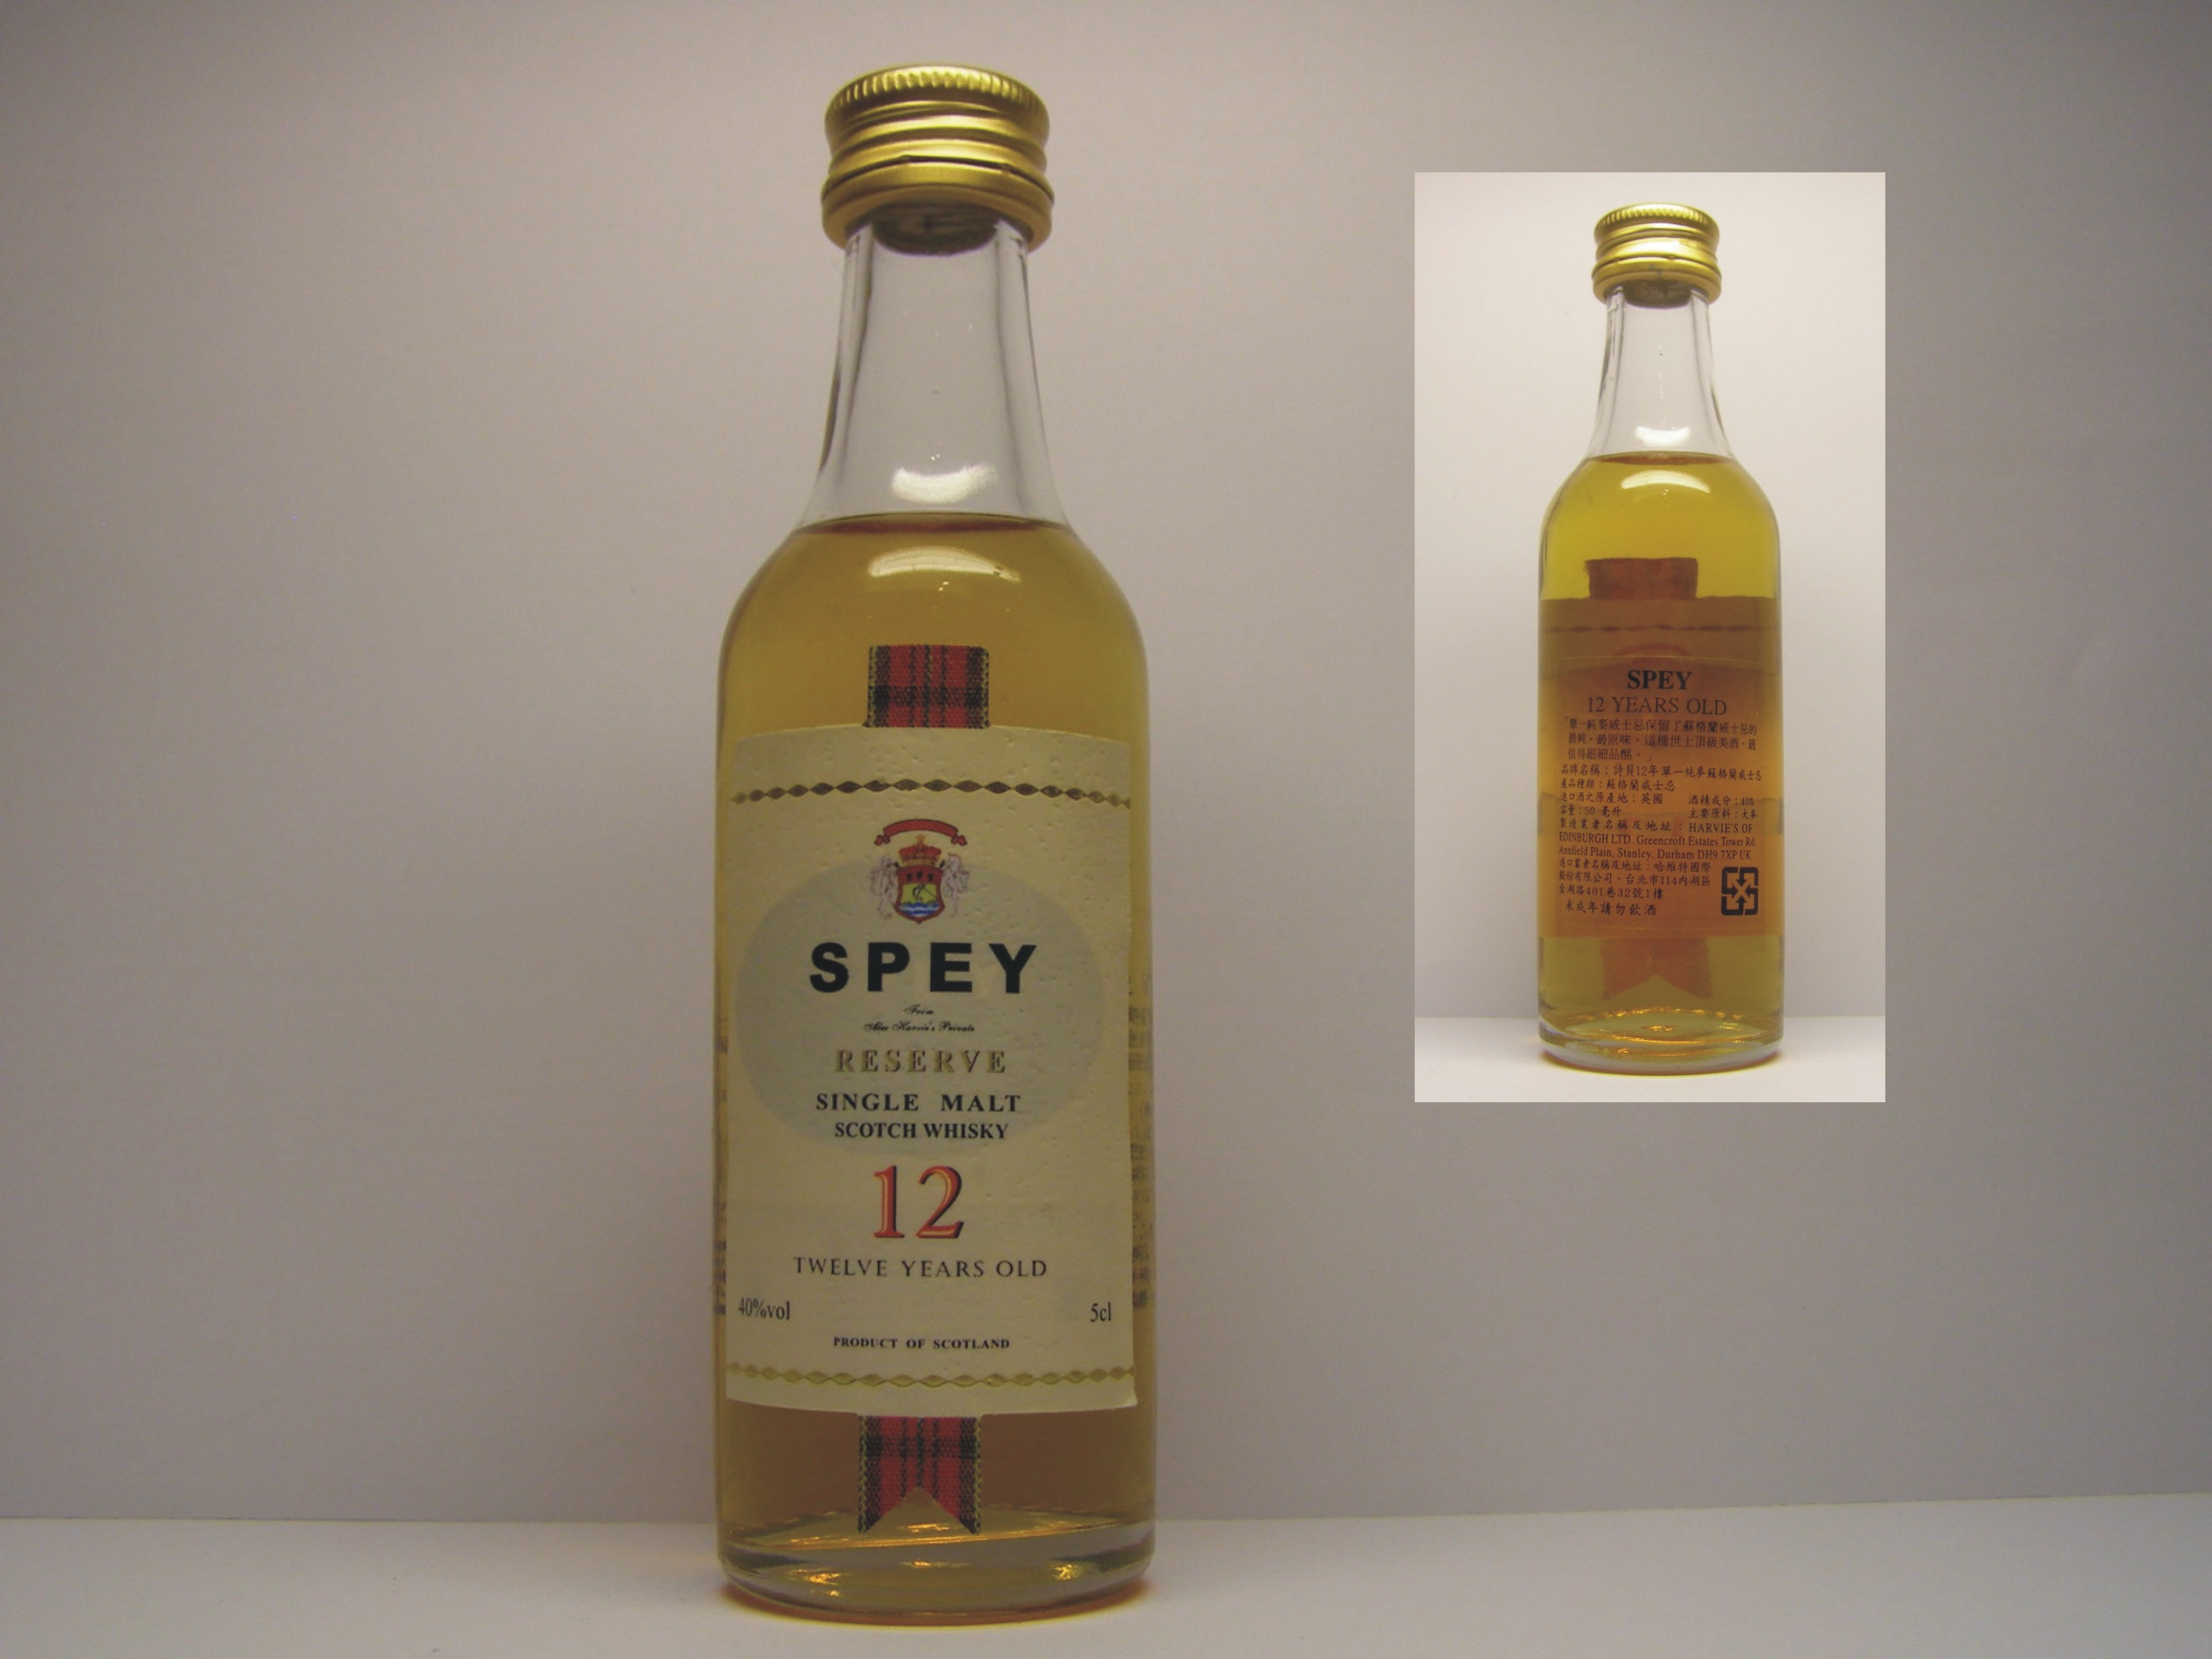 SPEY Reserve 12yo Single Malt Scotch Whisky